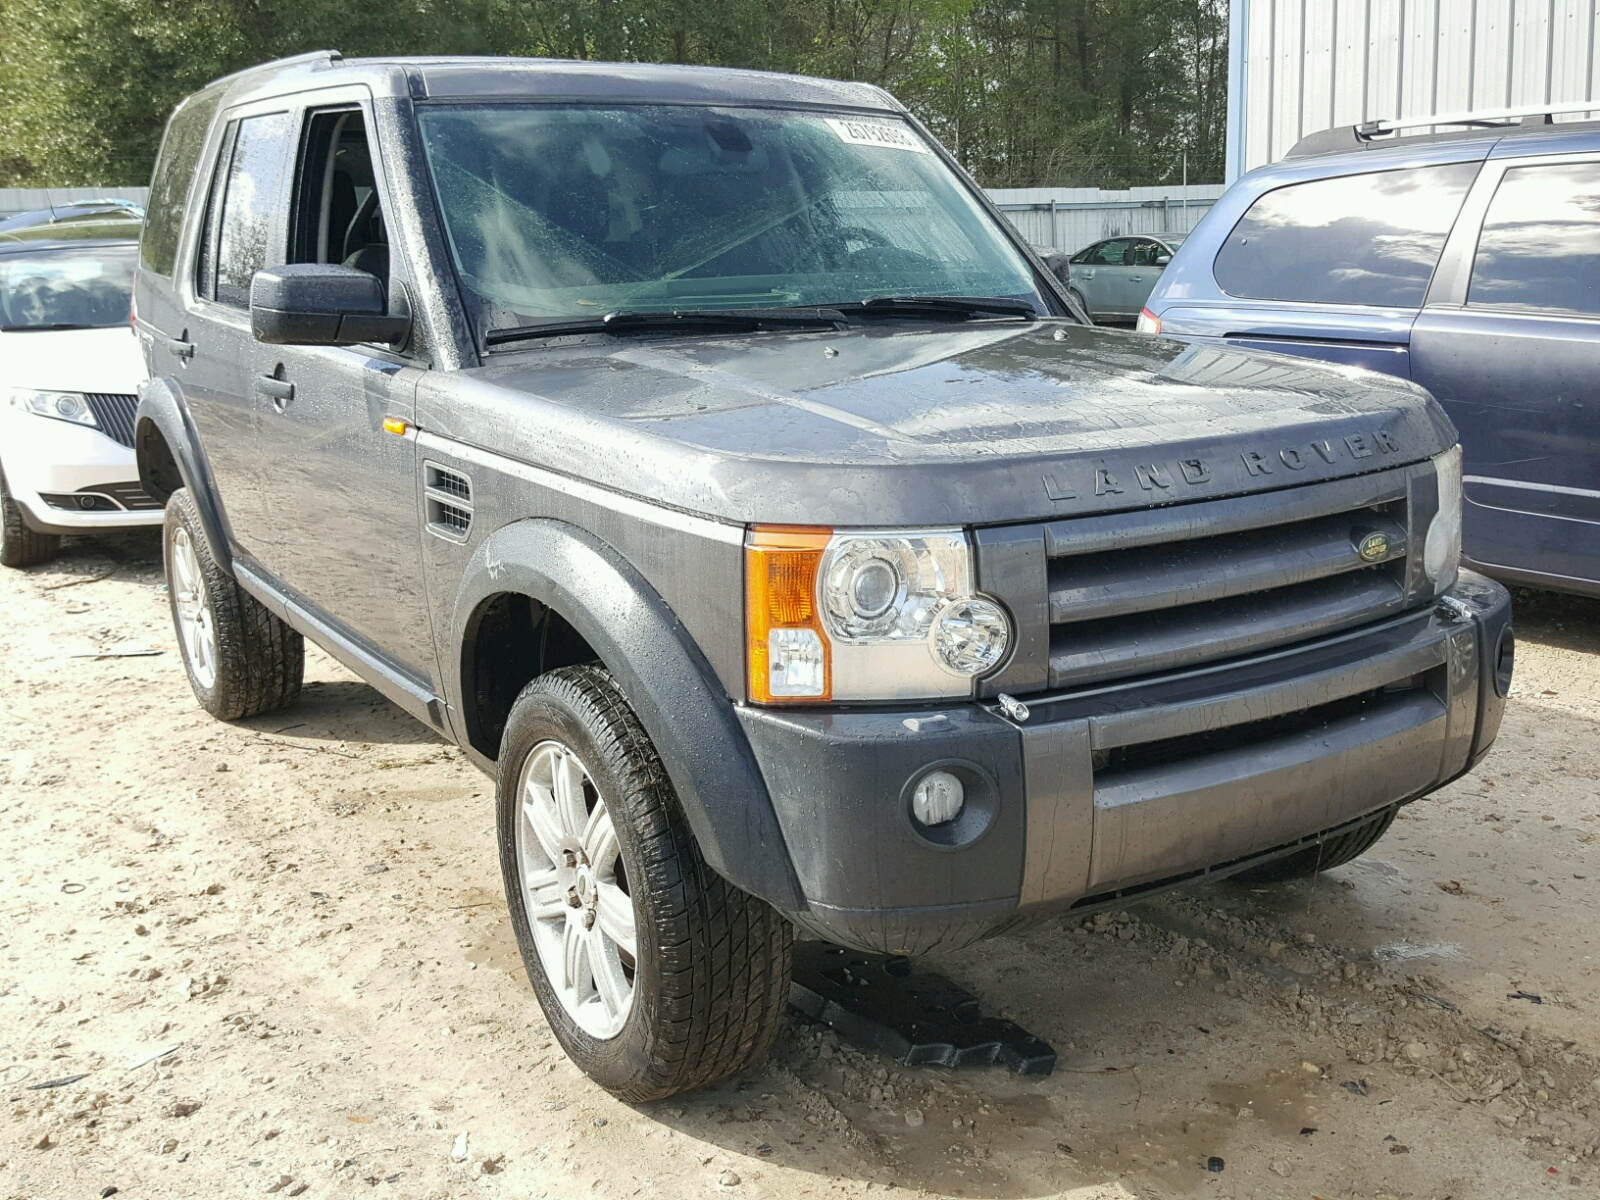 hse close of en title birmingham sale al auto view landrover carfinder cert for rover lot silver online in copart auctions land up salvage on